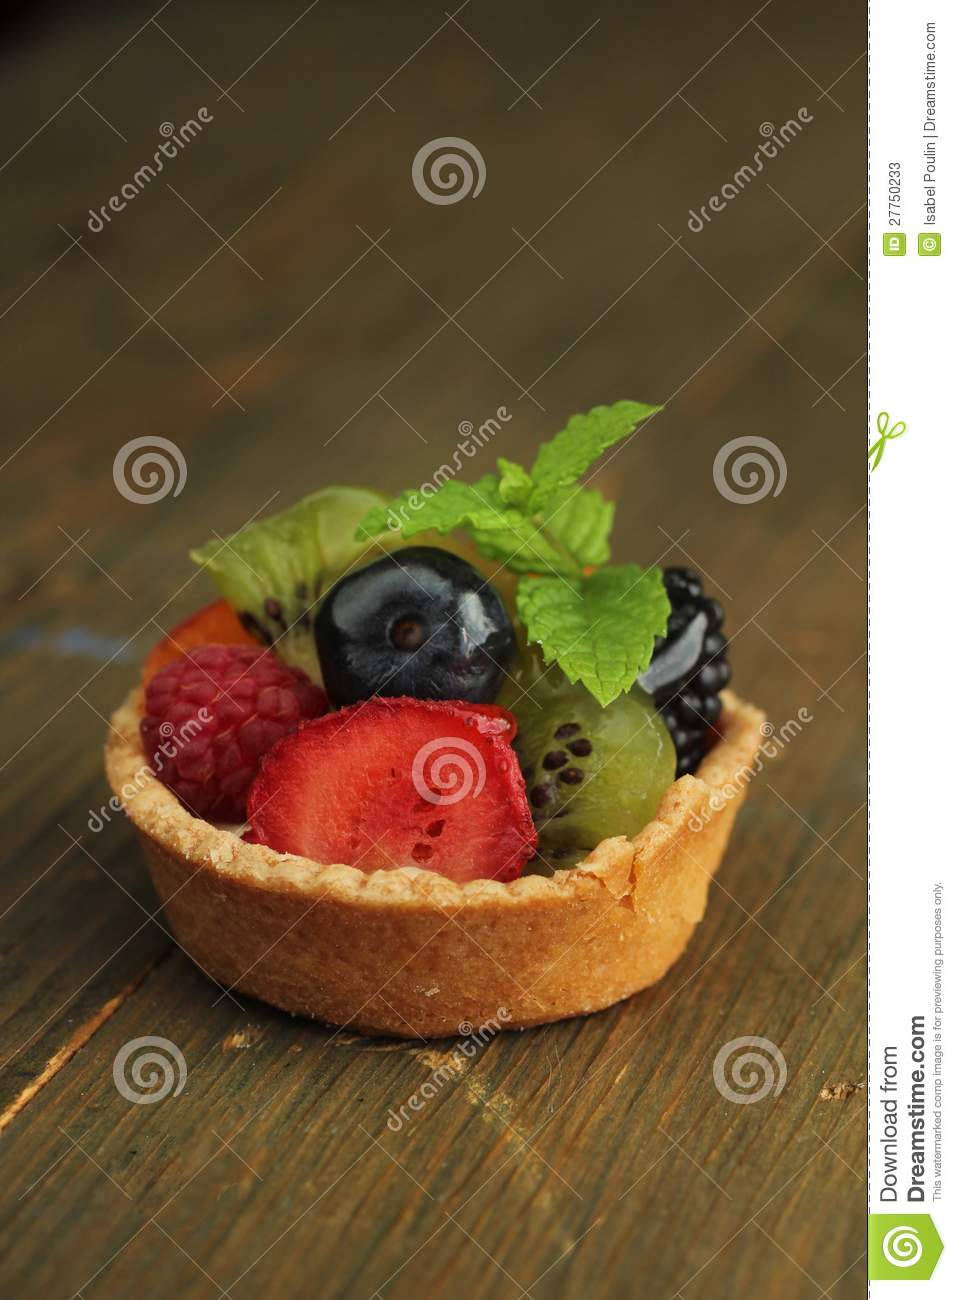 Porte des fruits la tarte